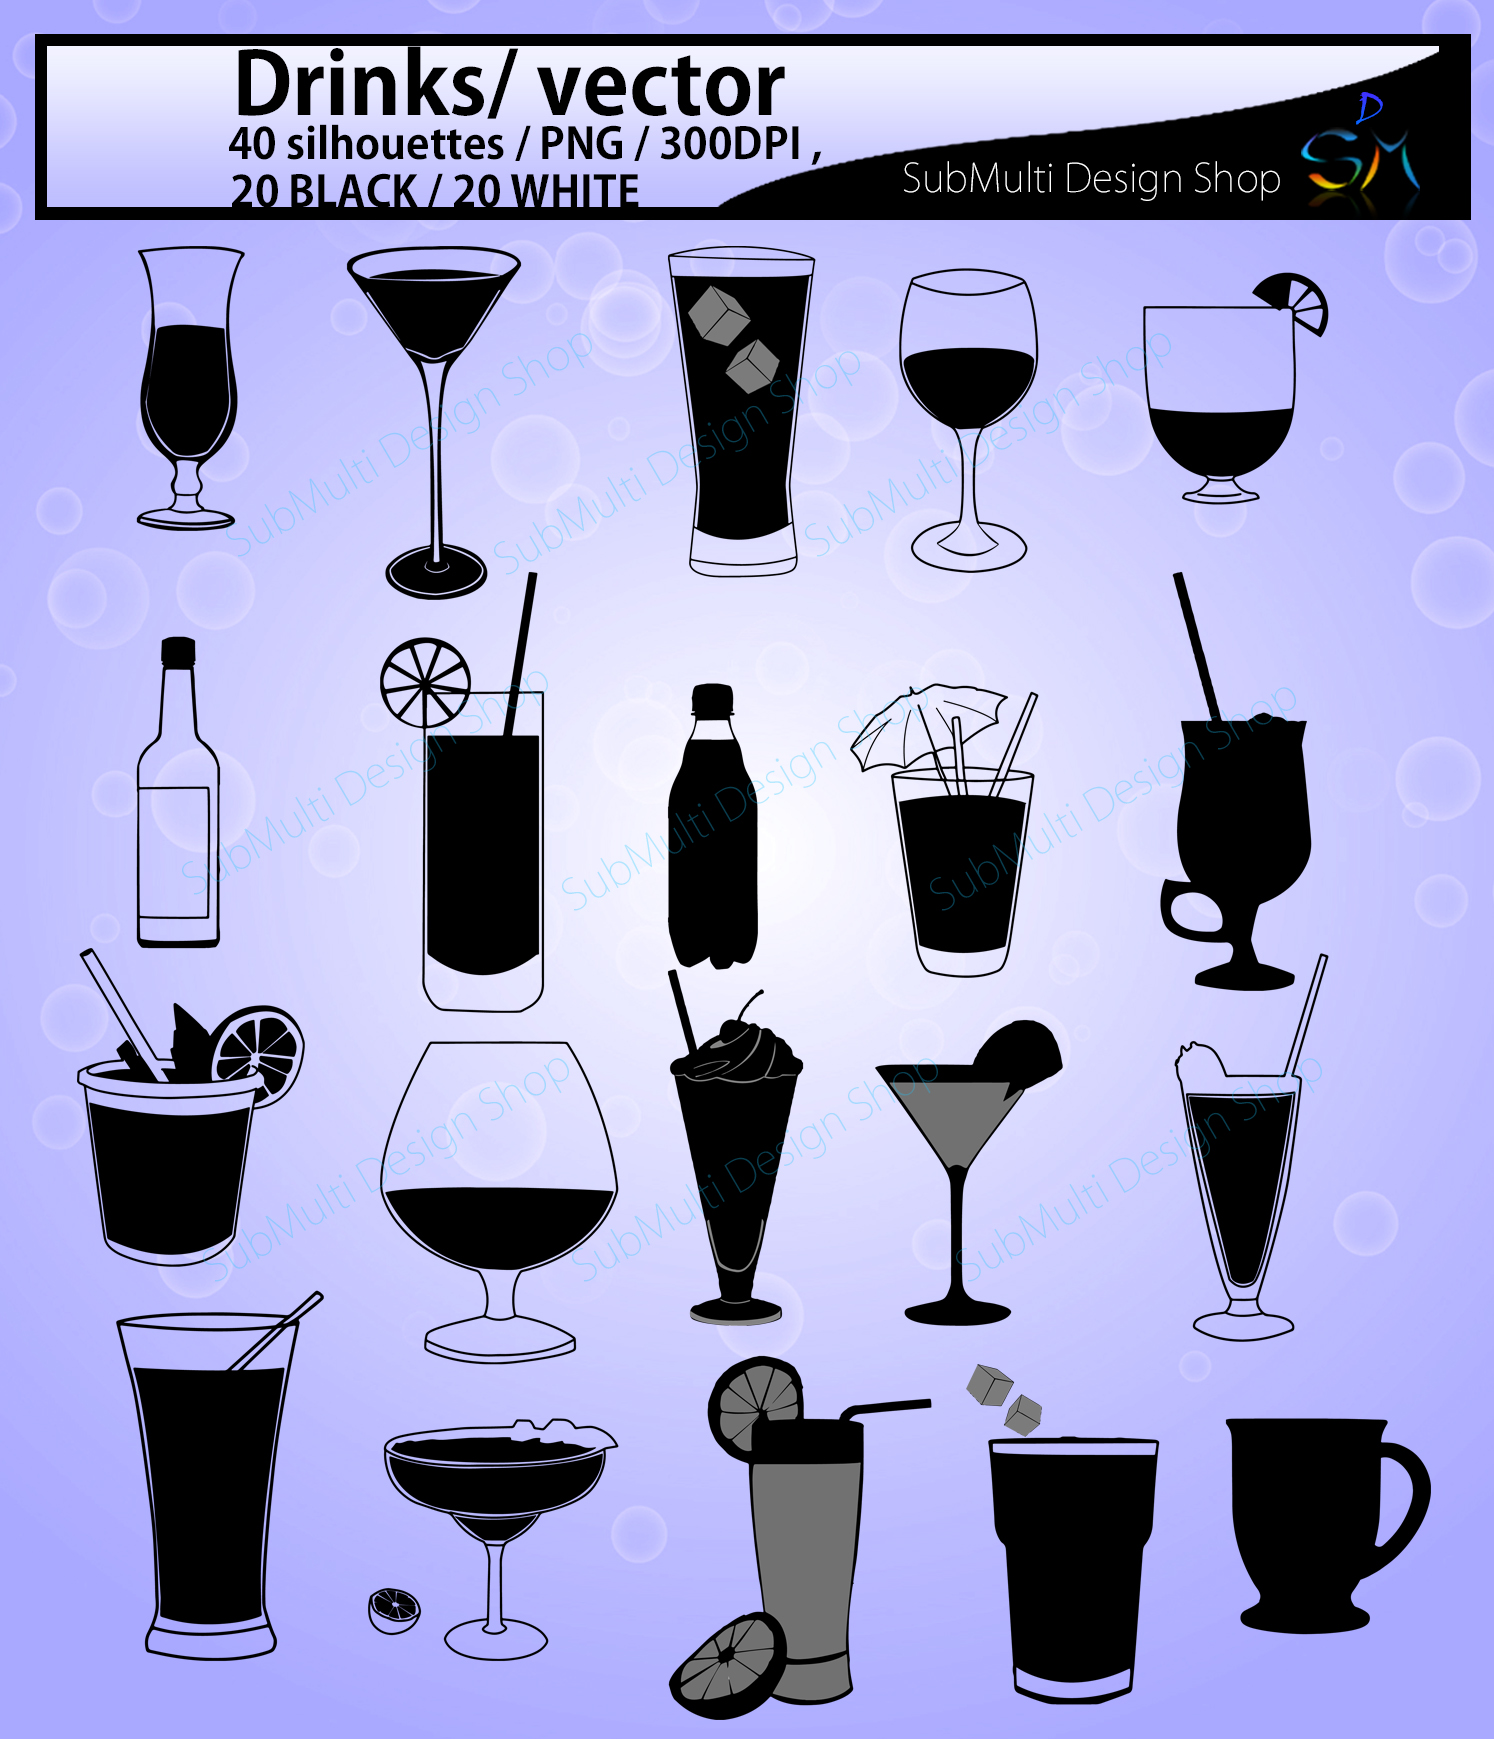 Download Free Drinks Silhouette Graphic By Arcs Multidesigns Creative Fabrica for Cricut Explore, Silhouette and other cutting machines.